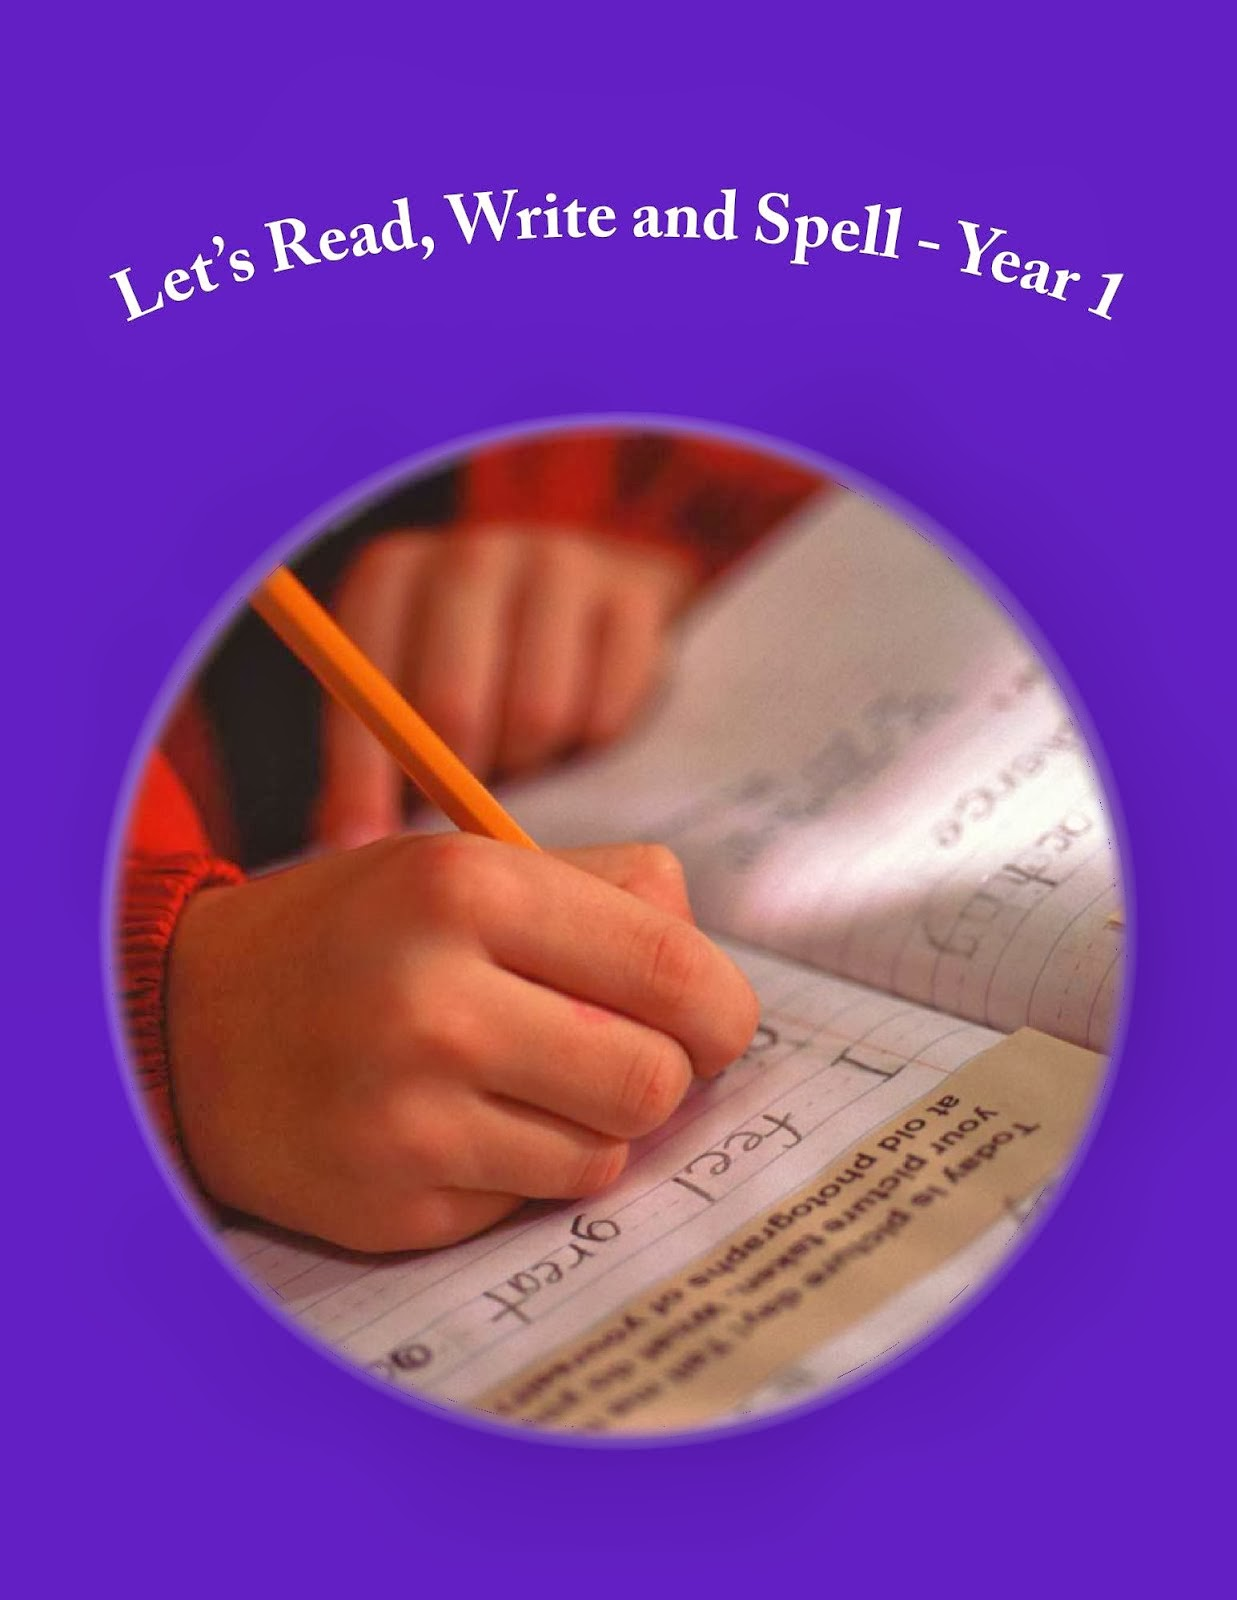 Let's Read, Write and Spell – Year 1